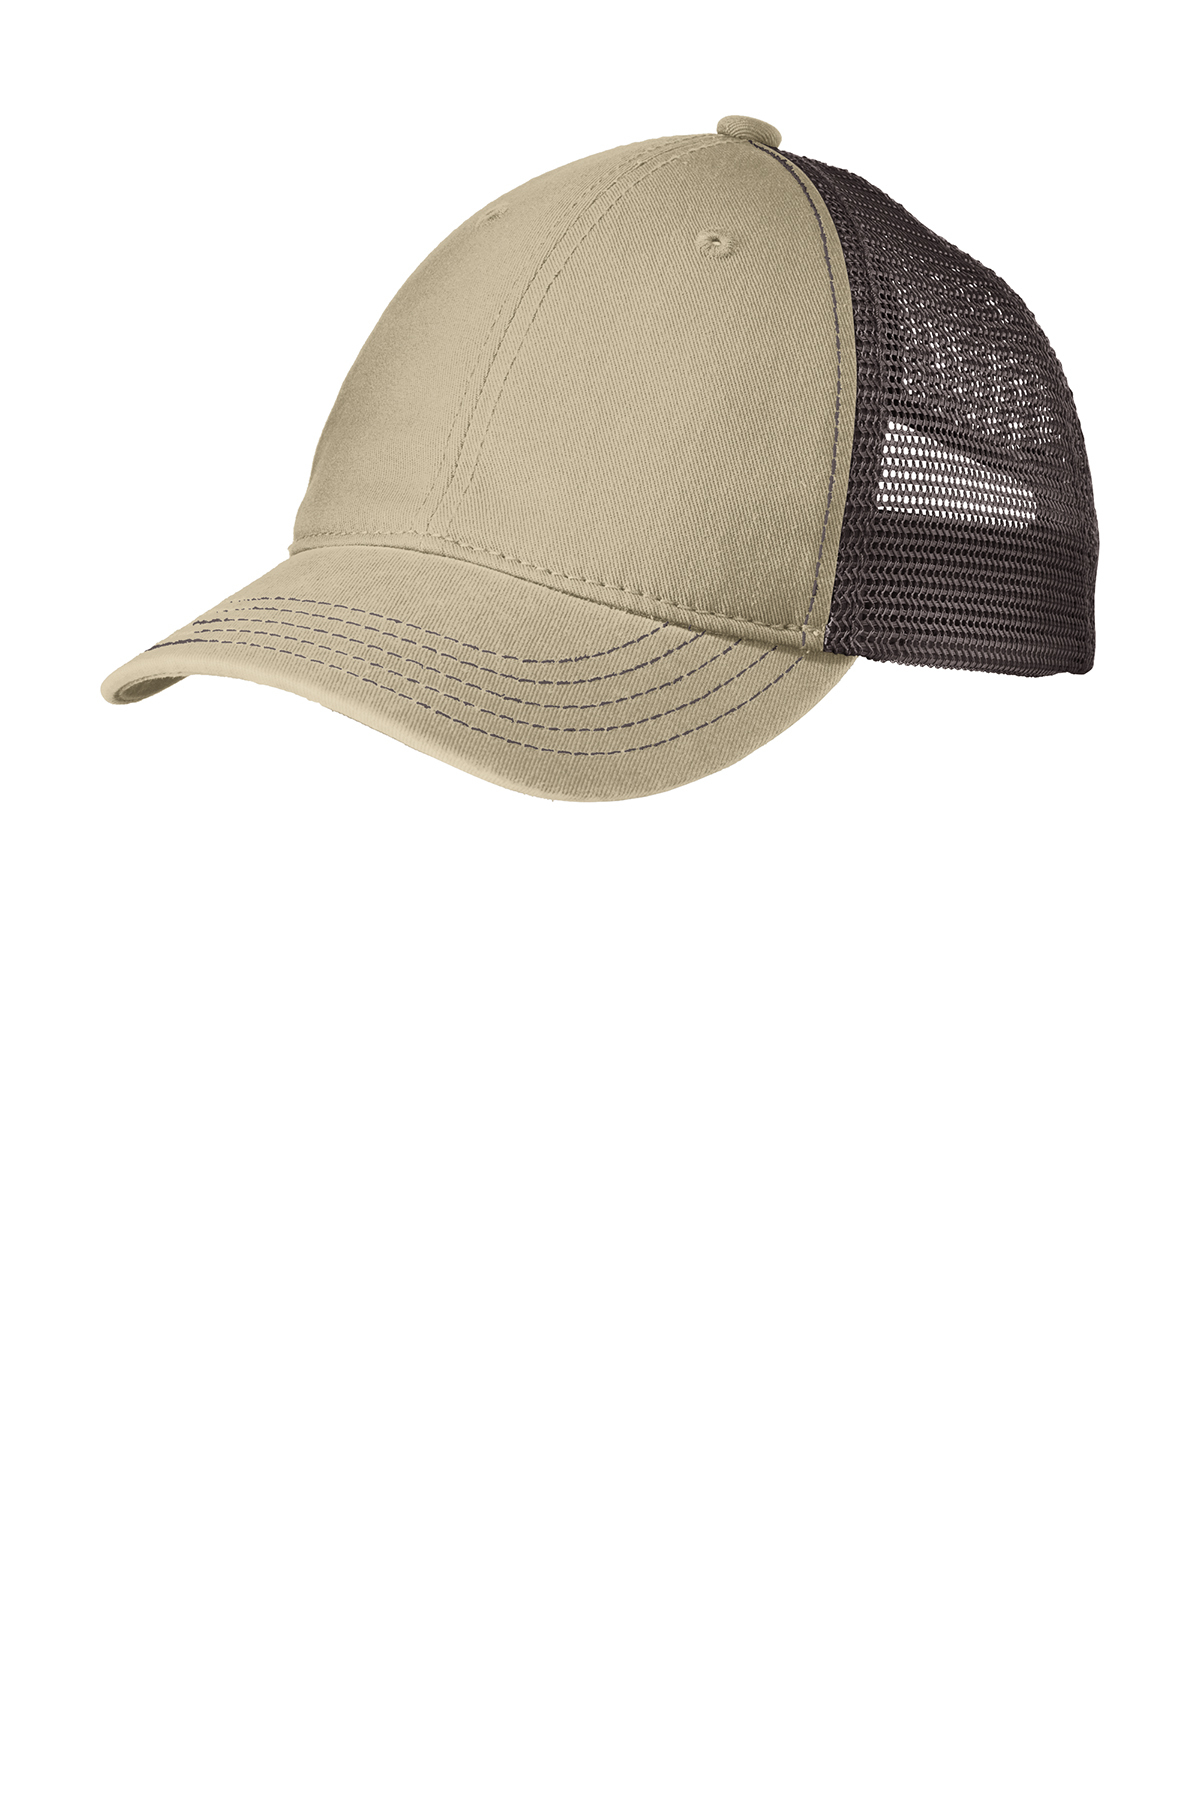 37a1da271ec District ® Super Soft Mesh Back Cap